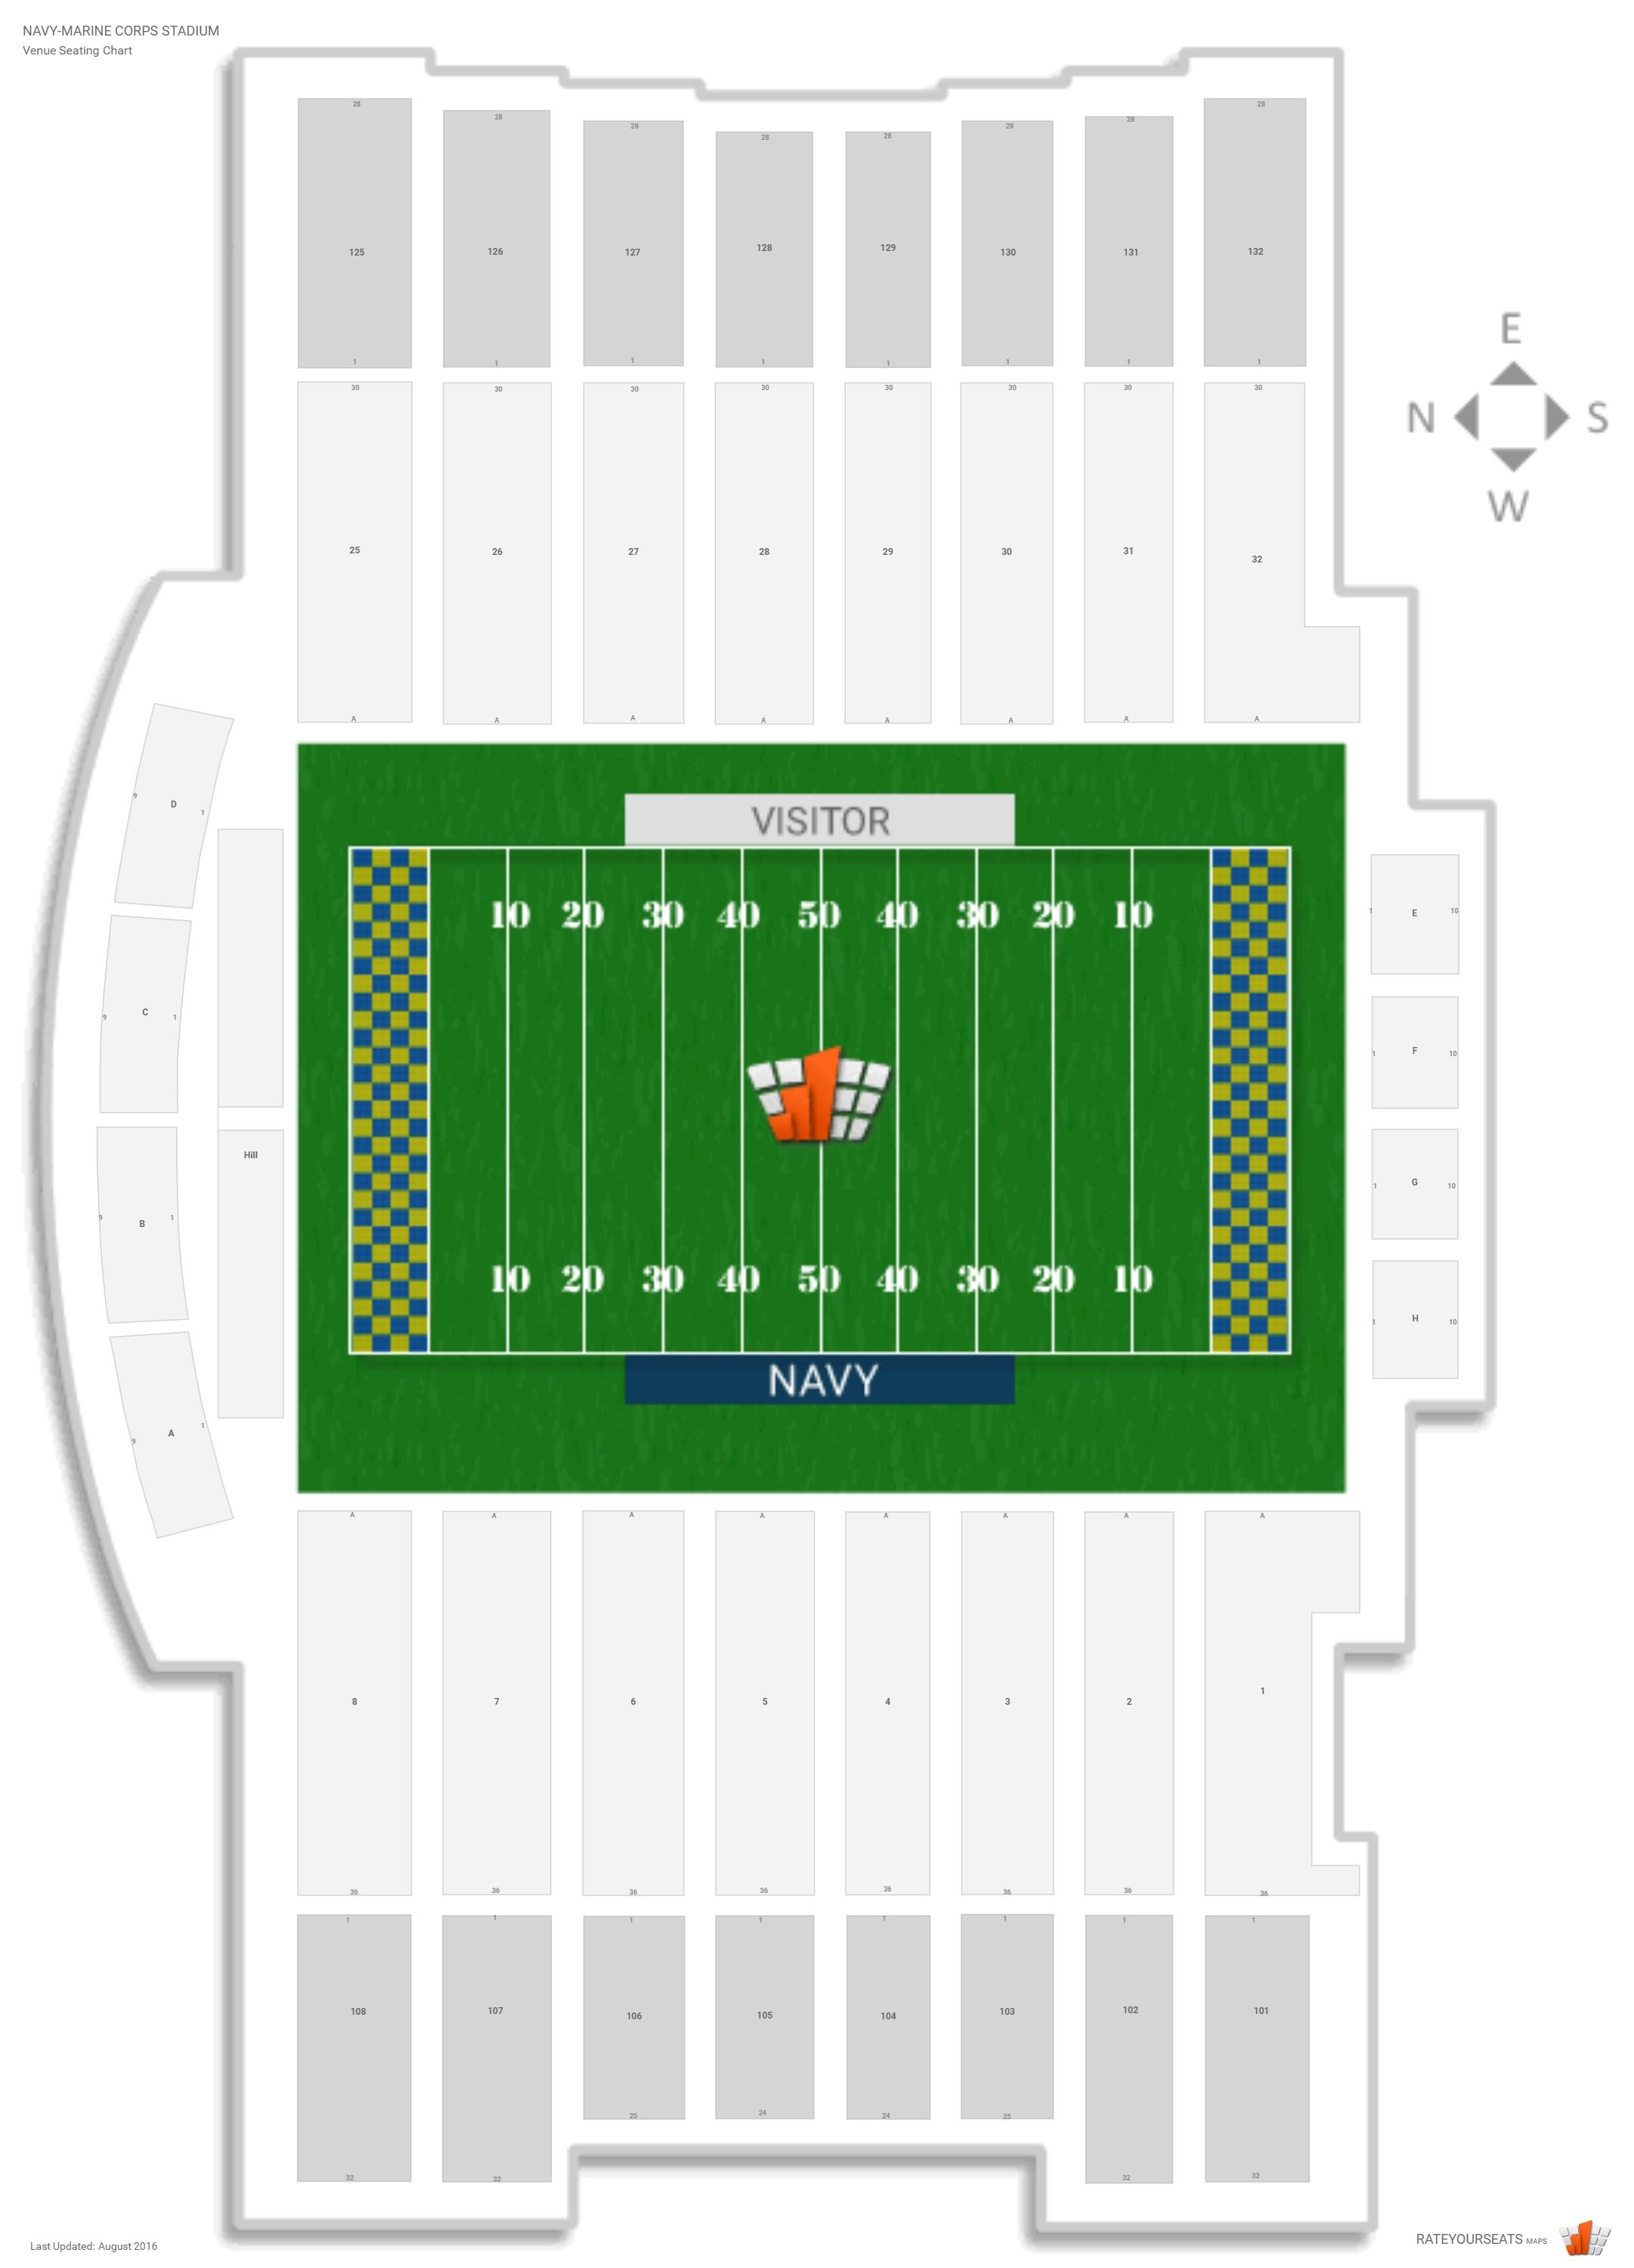 Navy Marine Corps Stadium Seating Chart With Row Numbers